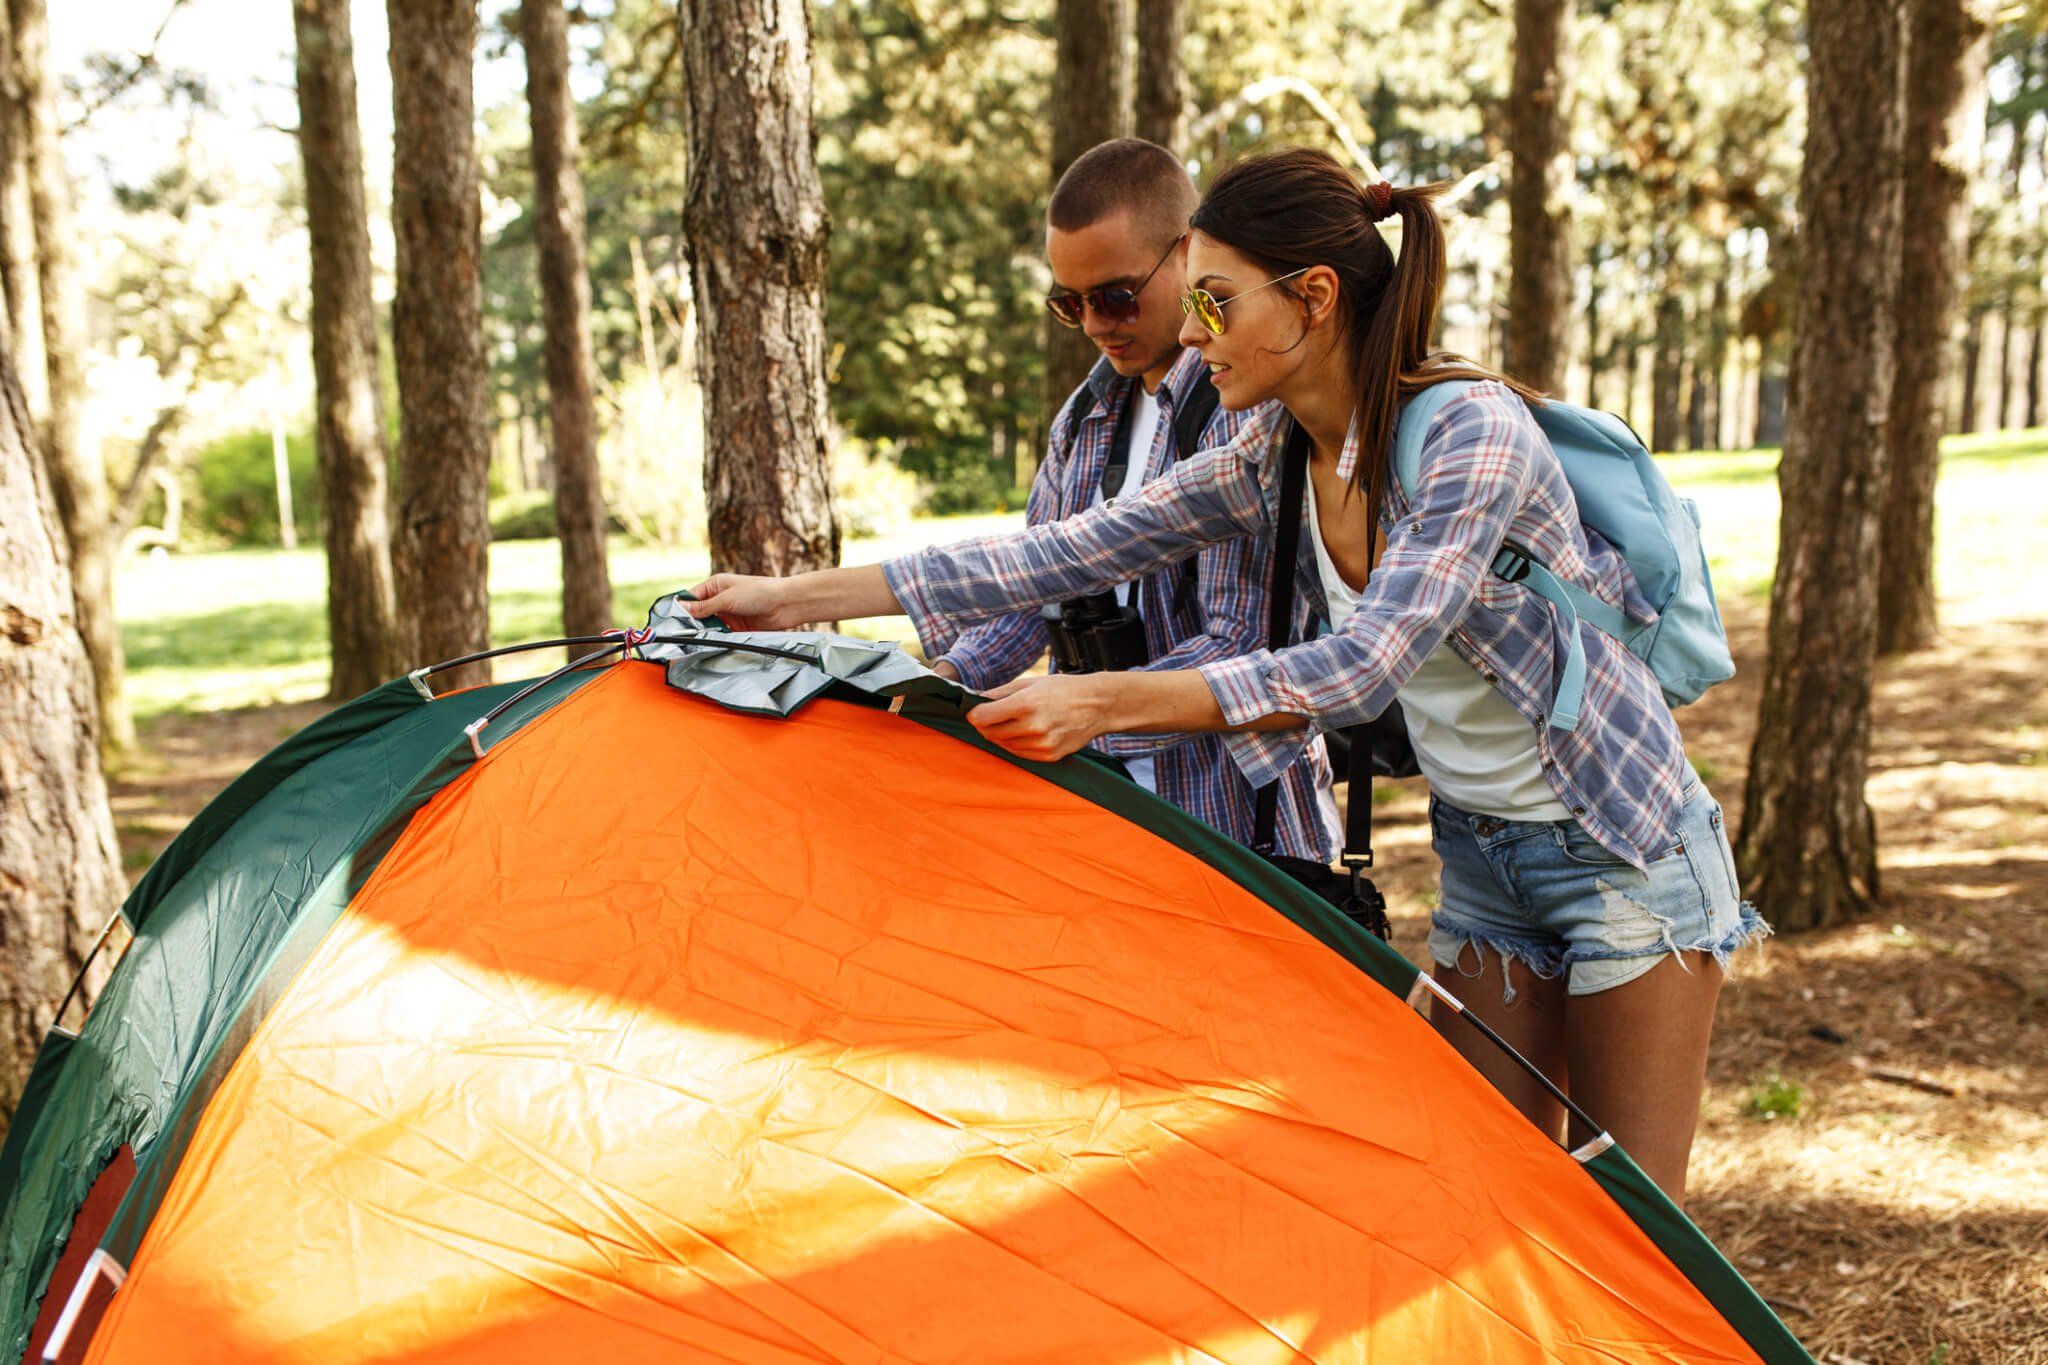 How to Repair a Ripped Tent